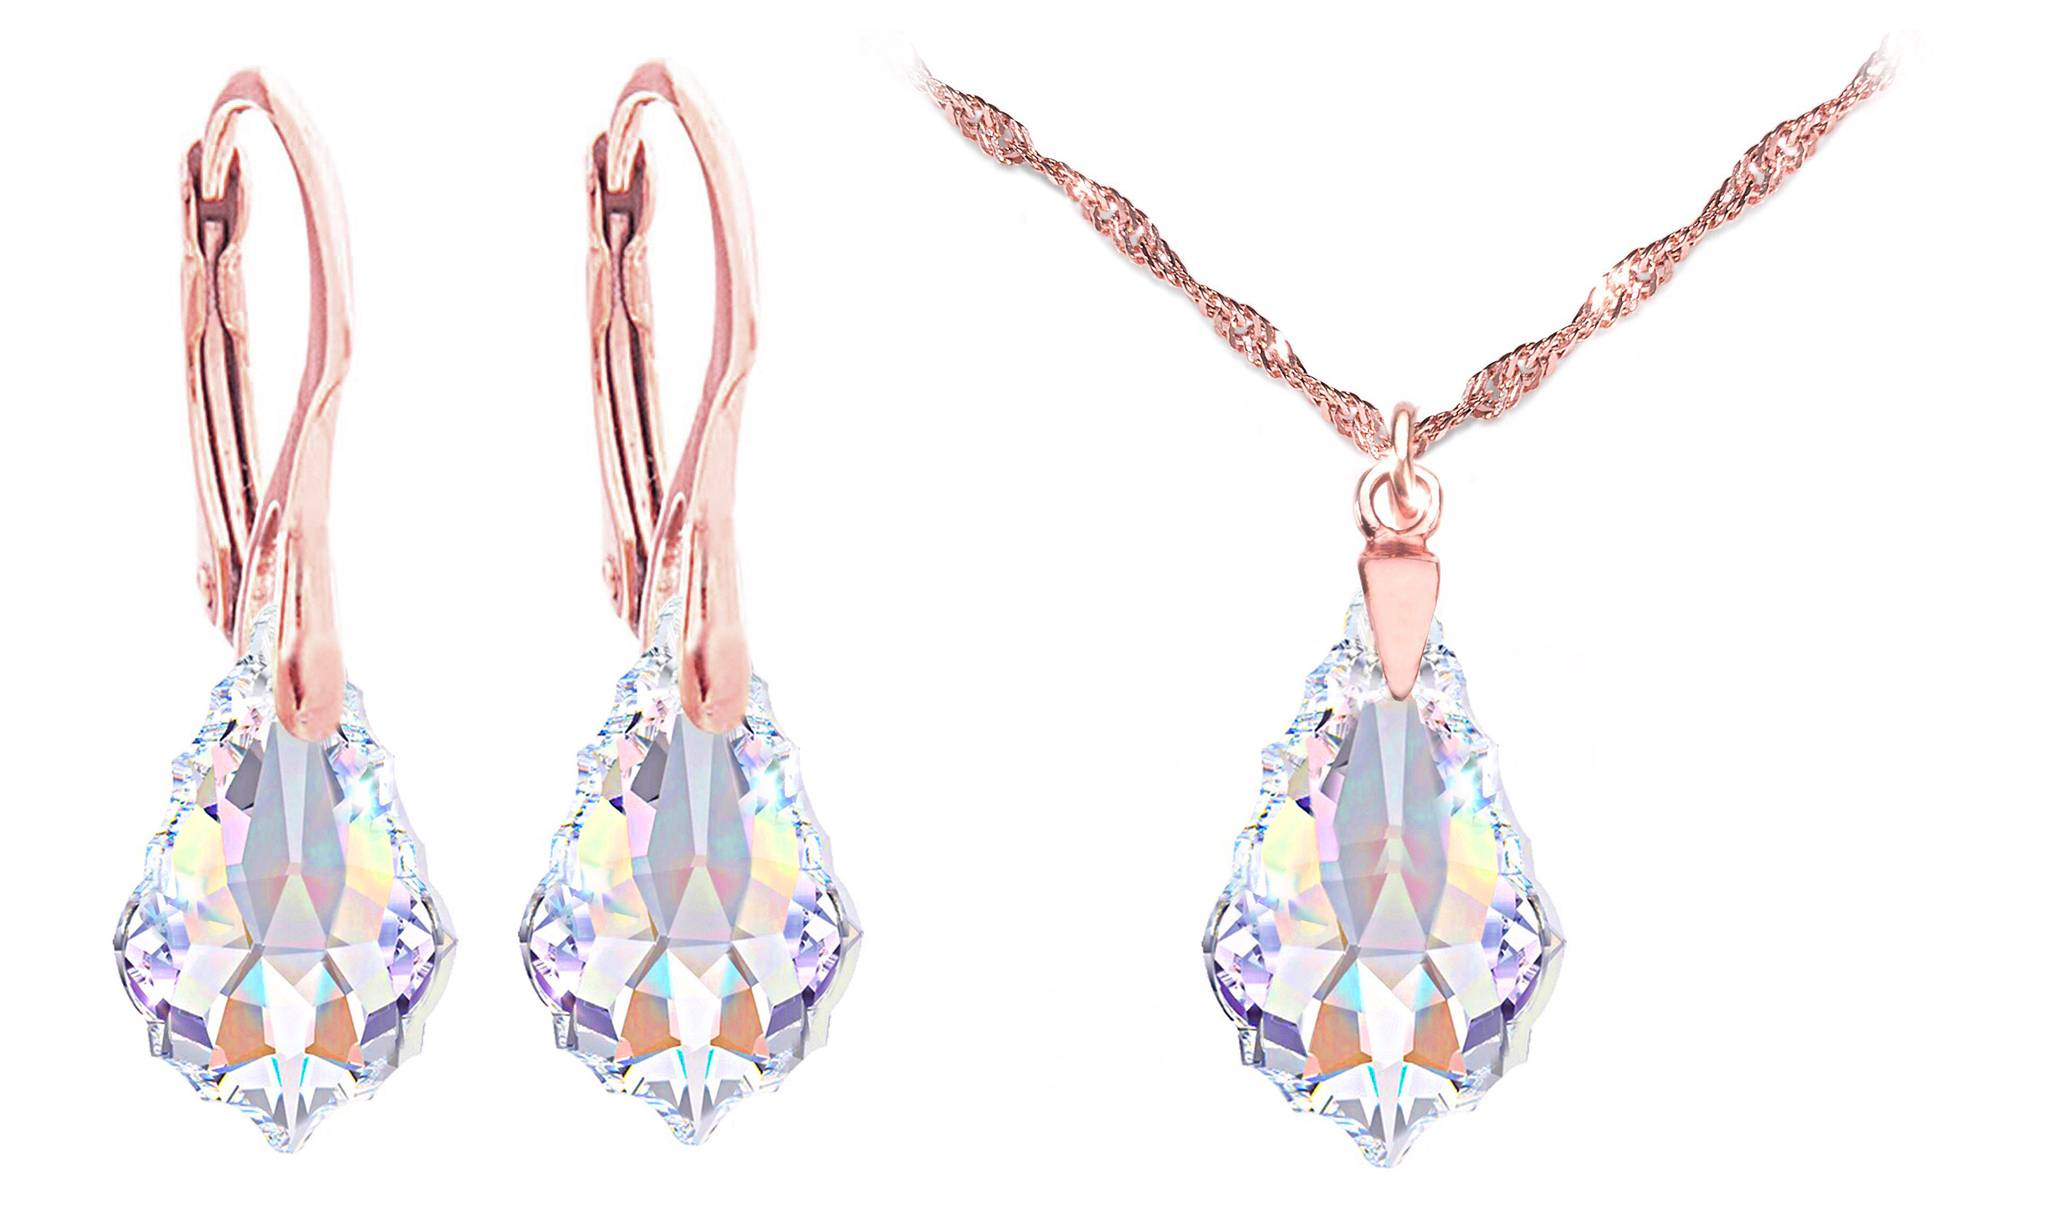 119.00 Ah! Jewellery Baroque Necklace Earrings Set: Aurore Boreale / Earrings and Necklace Set / Rose Gold-Coloured